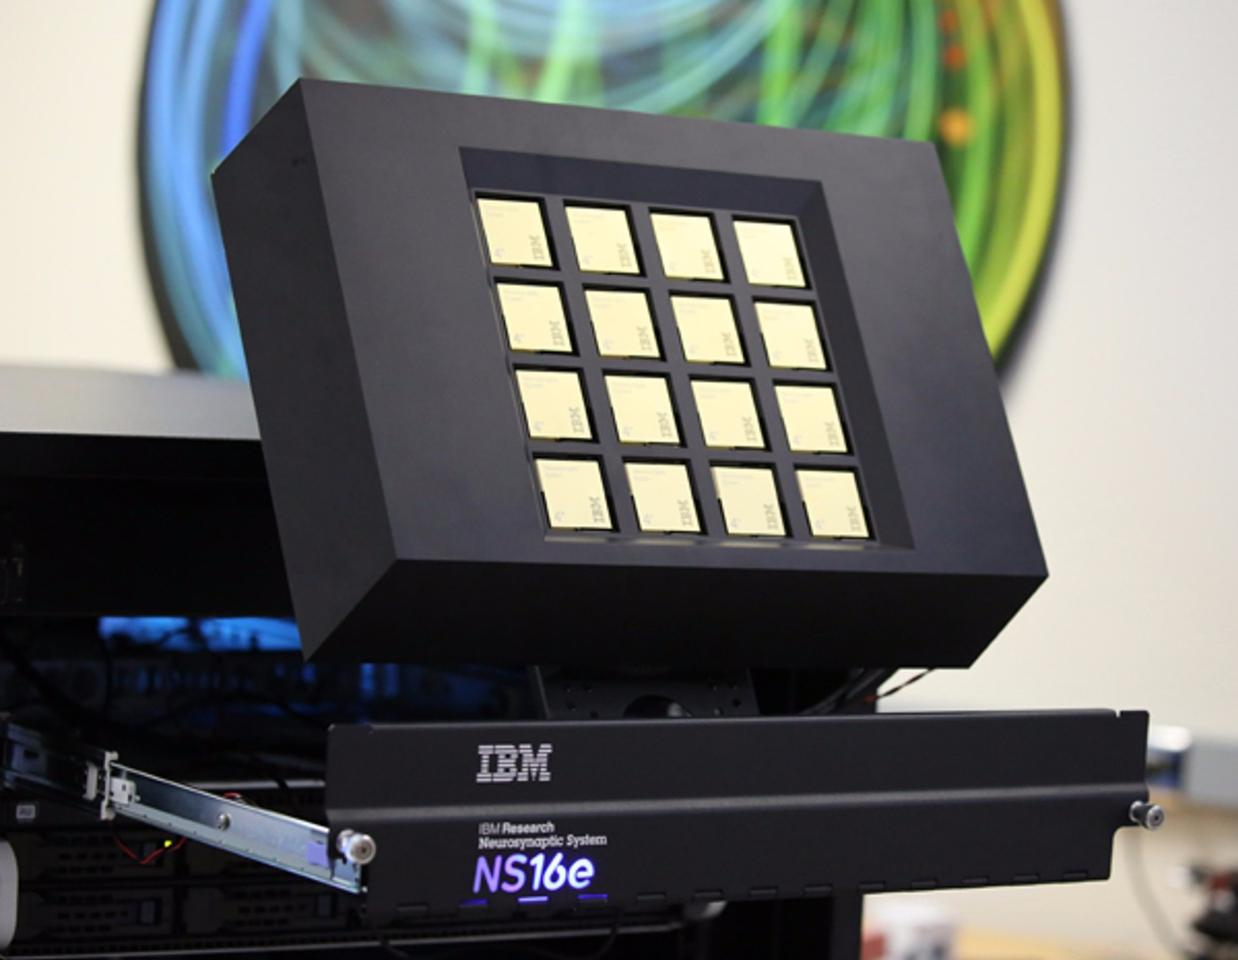 The 16-chip IBM TrueNorth platform Lawrence Livermore will receive later this week